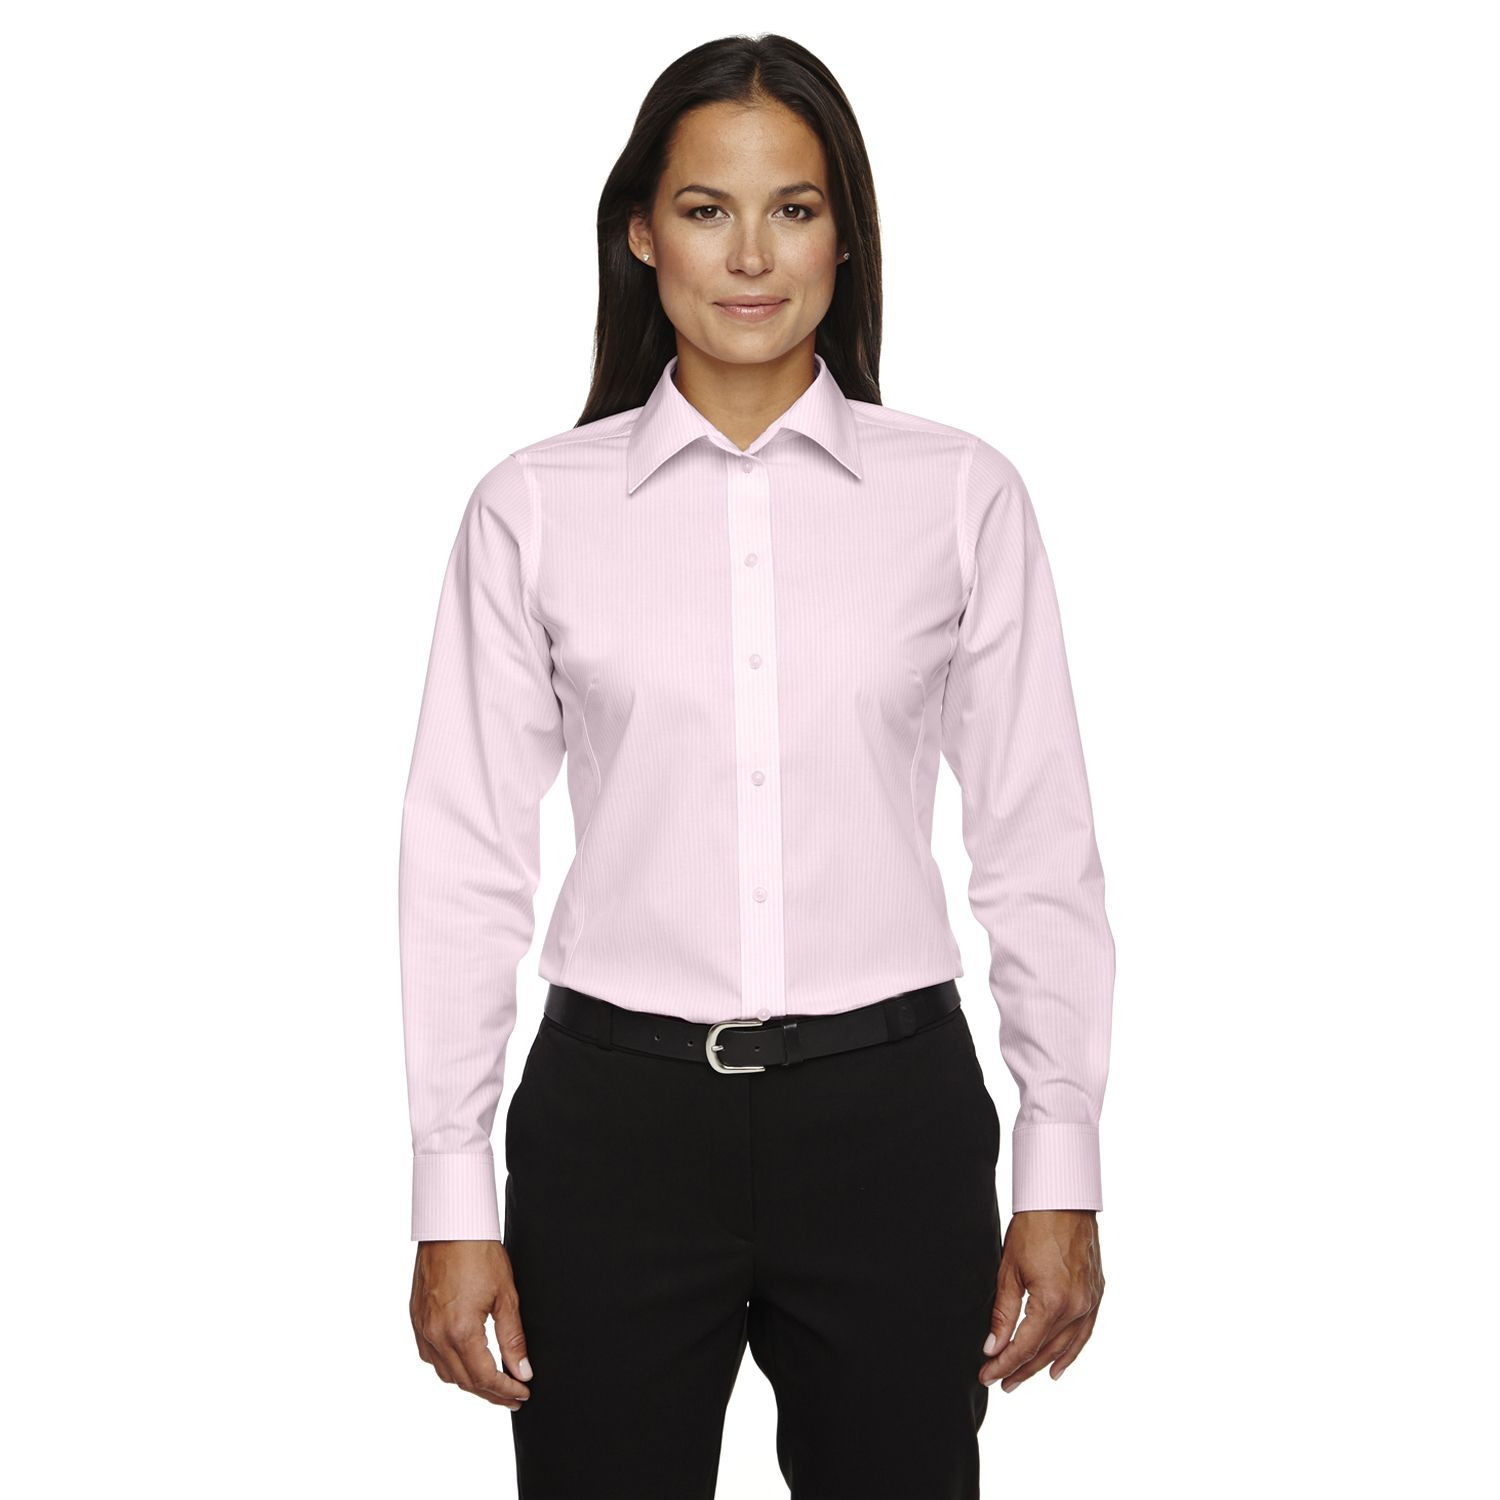 Crown Collection Womens Banker Dress Shirt Products Pinterest